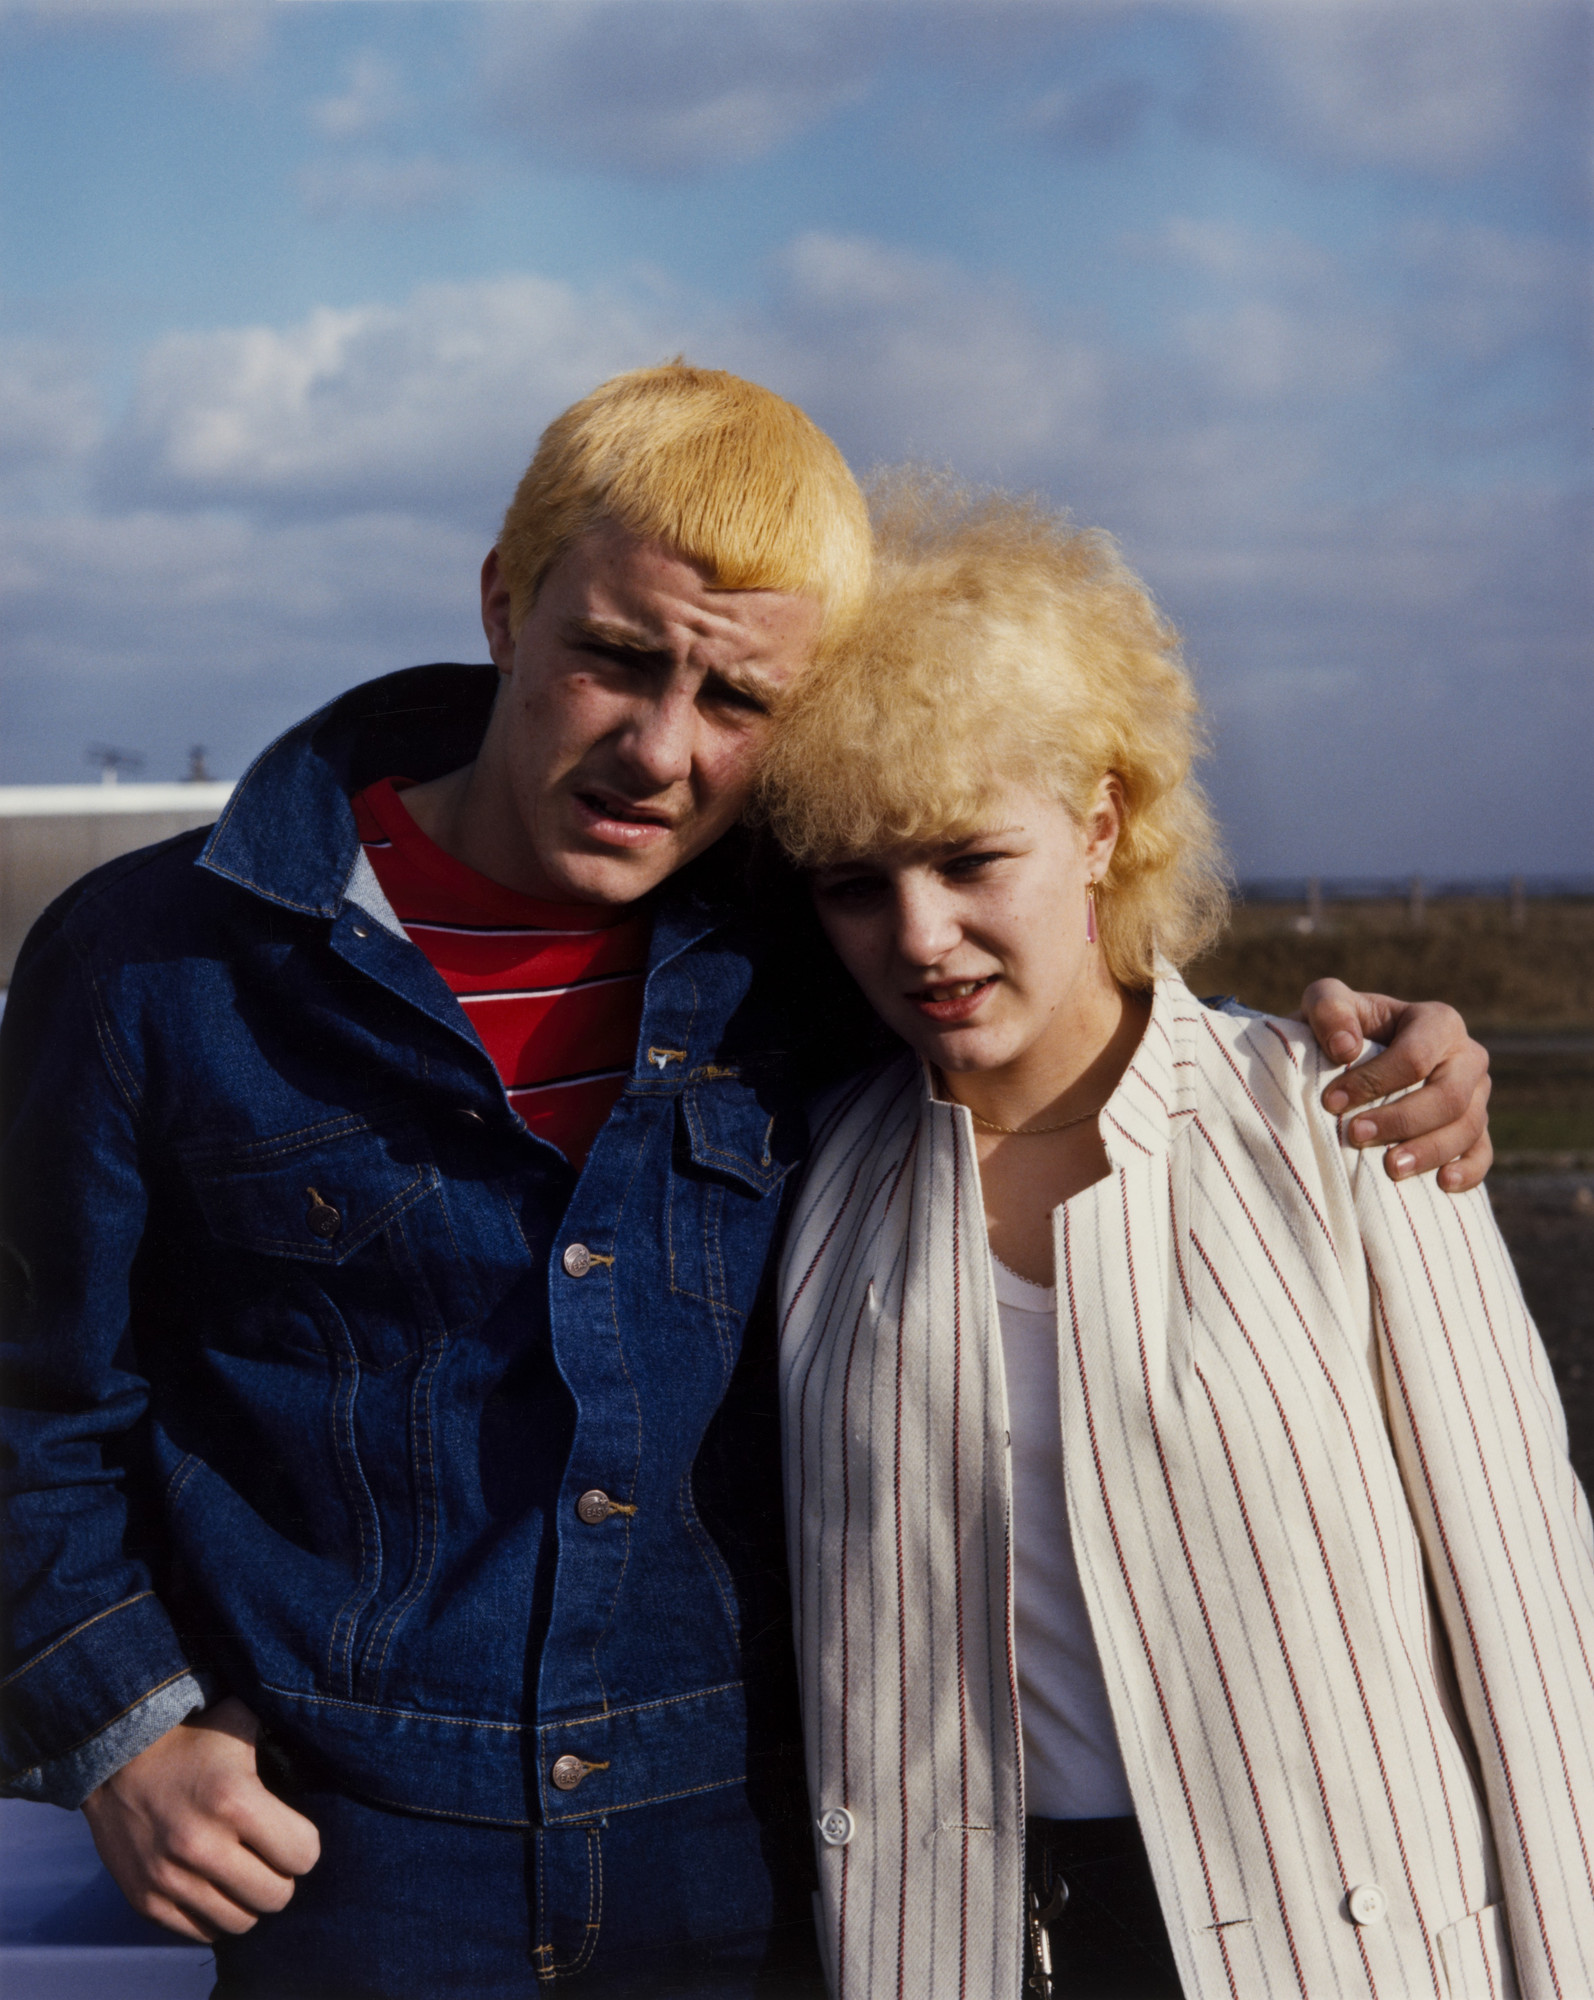 Paul Graham. Couple on Day-Trip, Washington Services, Tyne and Wear. May 1982